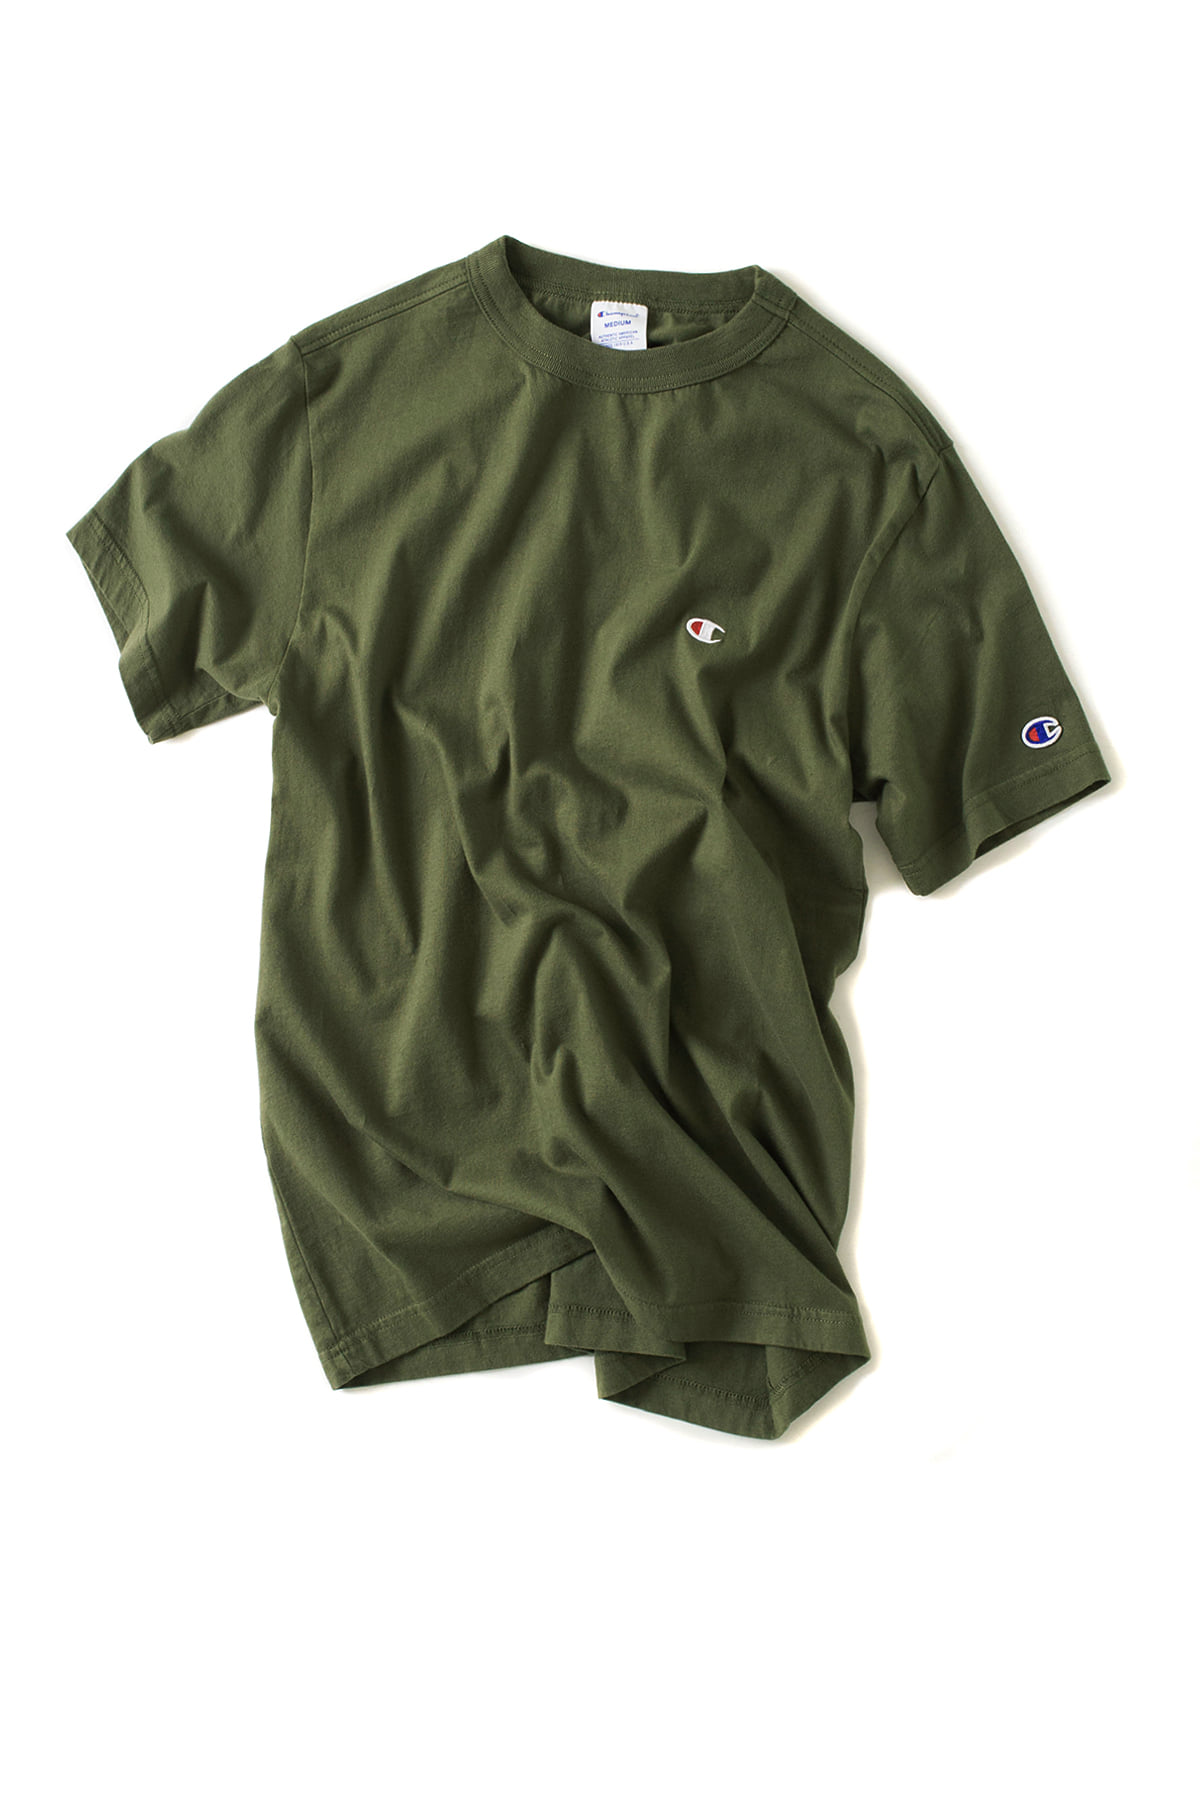 Champion : Basic T-Shirt (Dark Green)